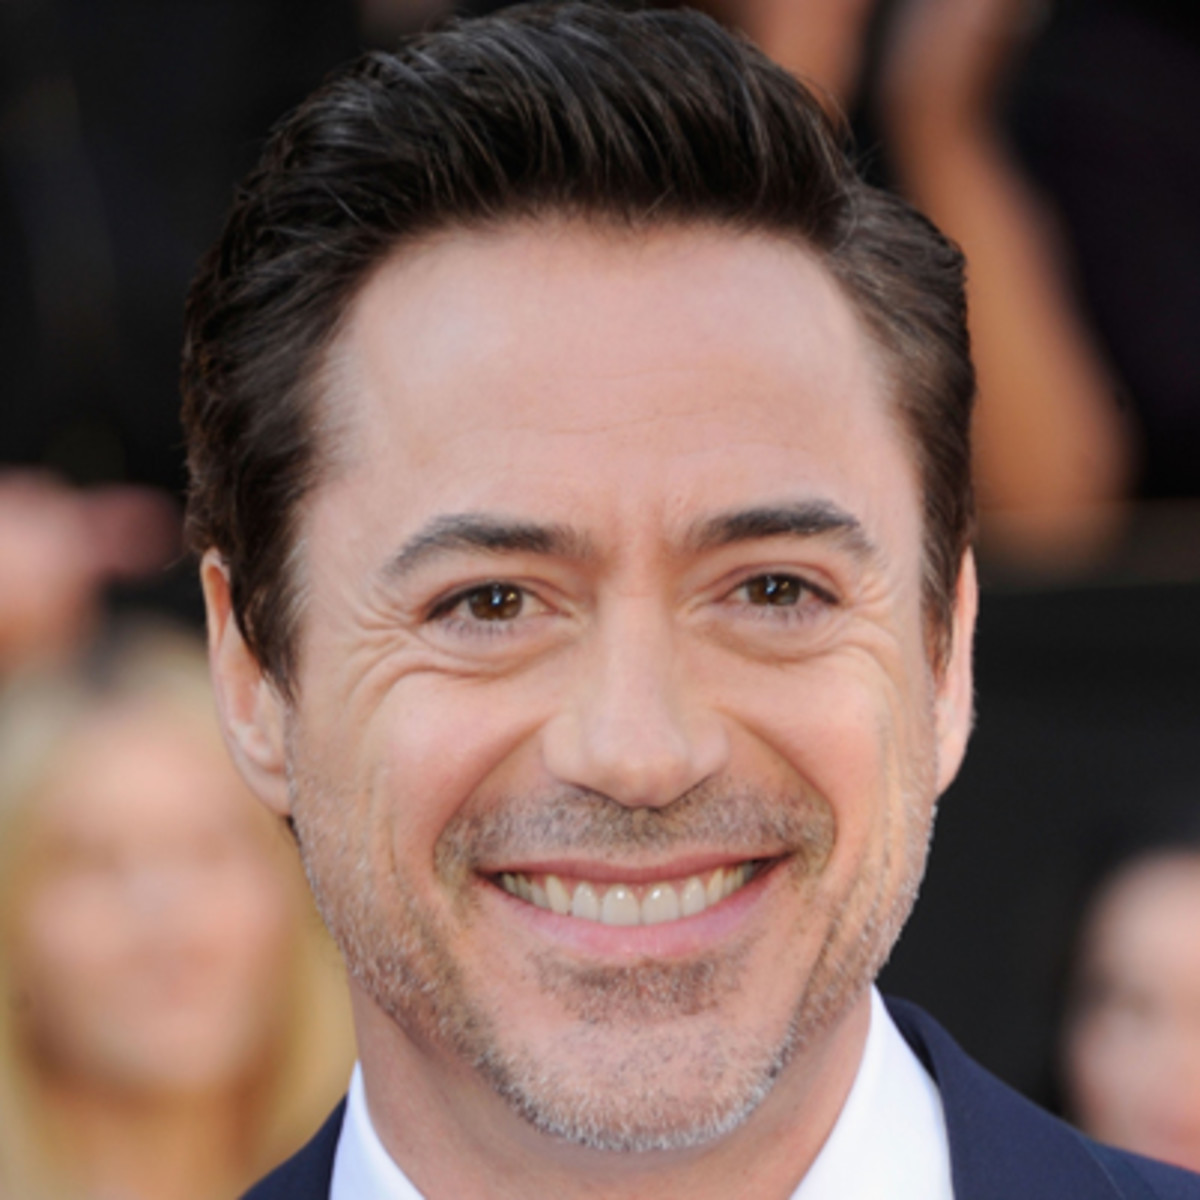 Robert Downey Jr. - Film Actor, Actor - Biography.com